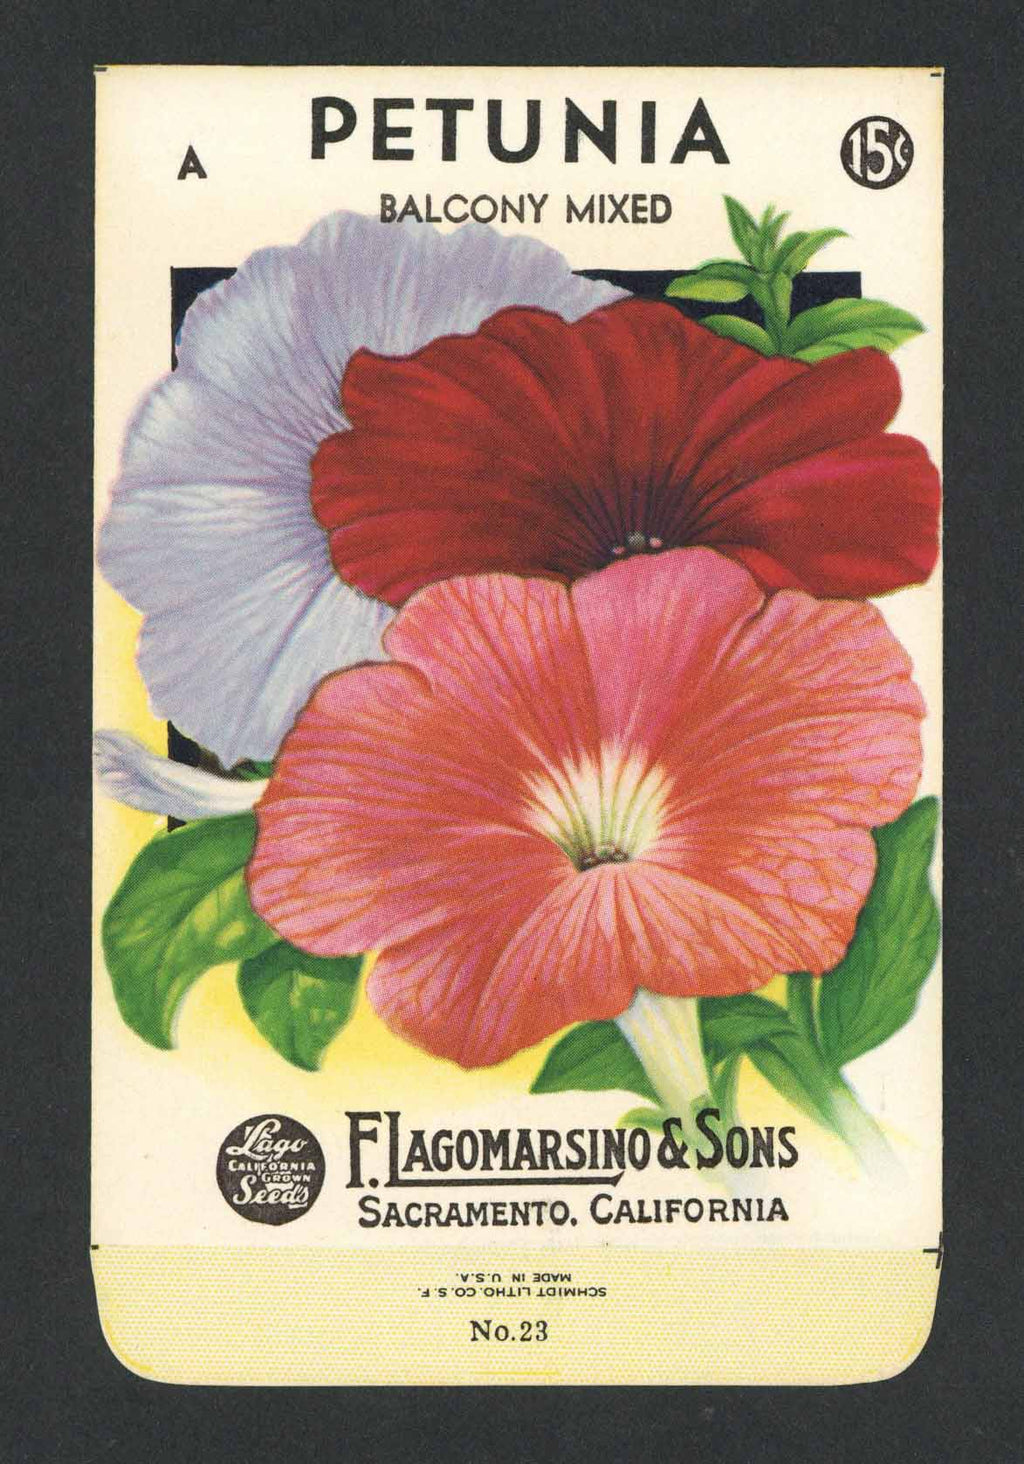 Petunia Vintage Lagomarsino Seed Packet, Balcony Mixed